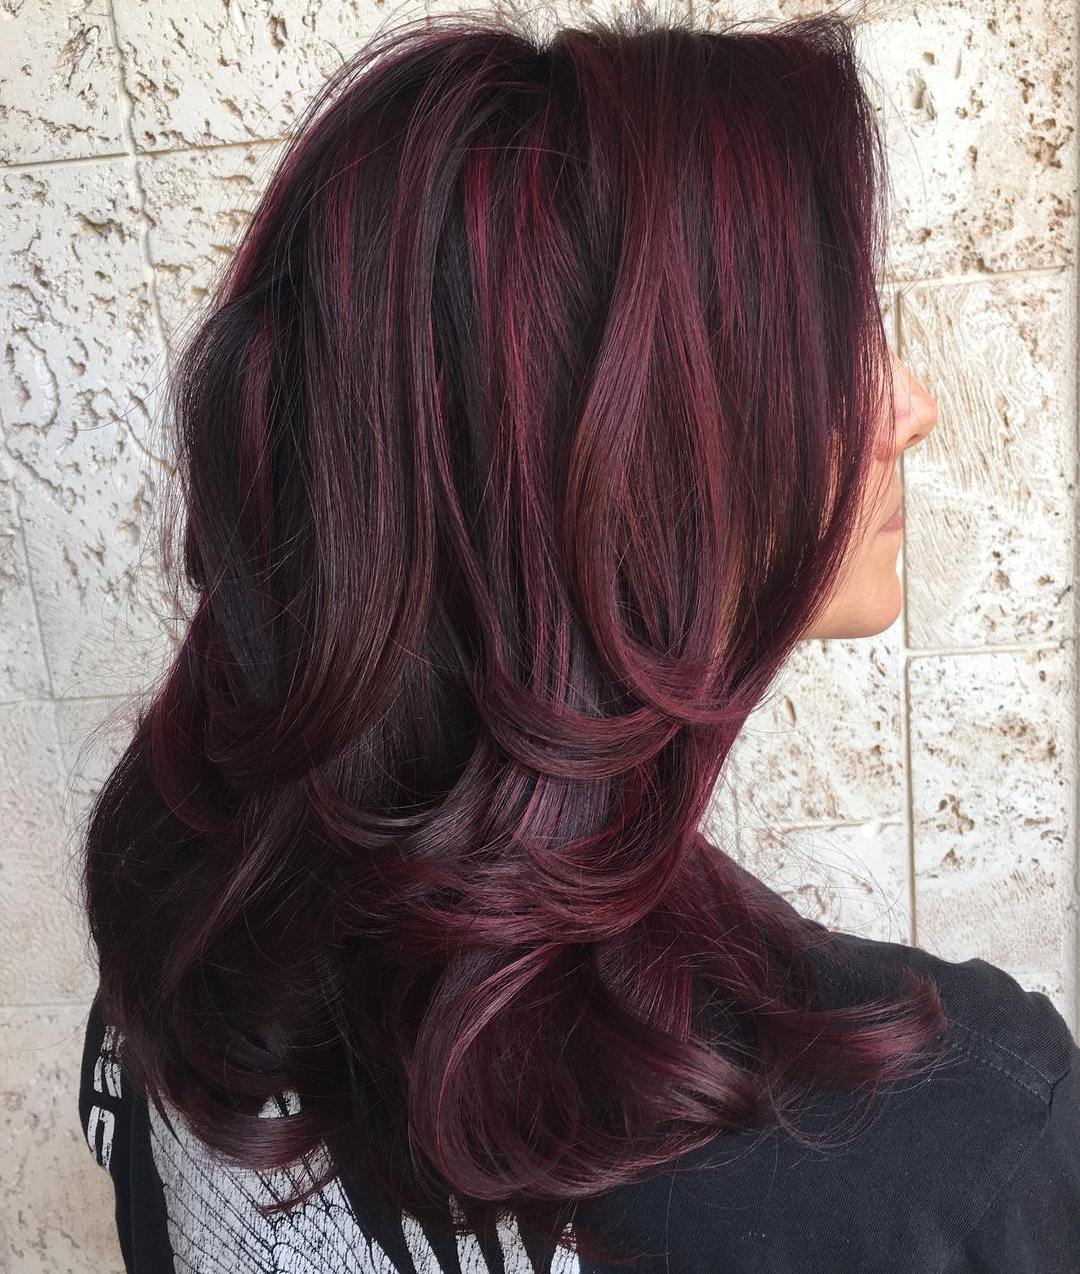 ... Hair: Dark Burgundy, Maroon, Burgundy with Red, Purple and Brown